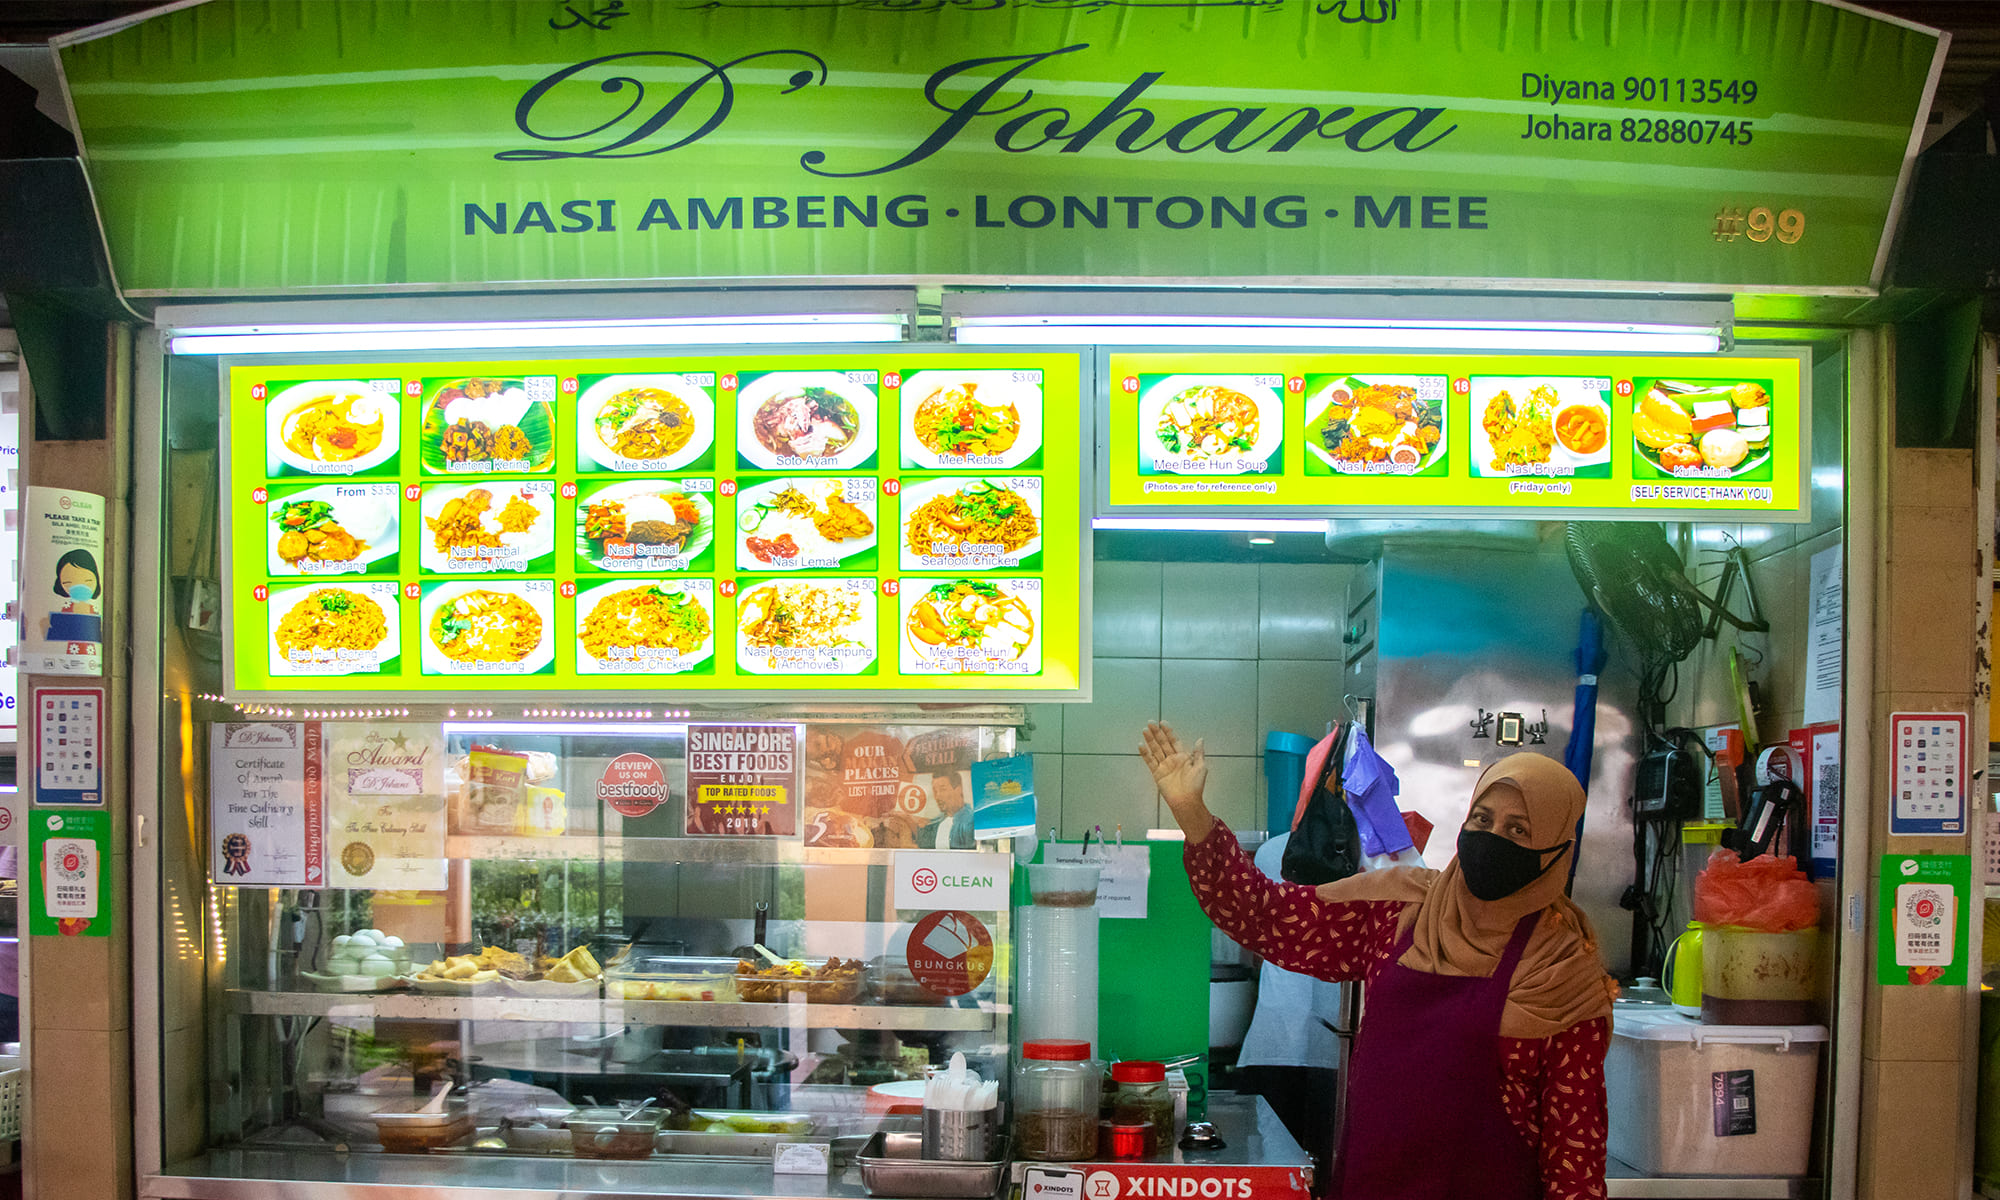 D'Johara WhyQ Delivery